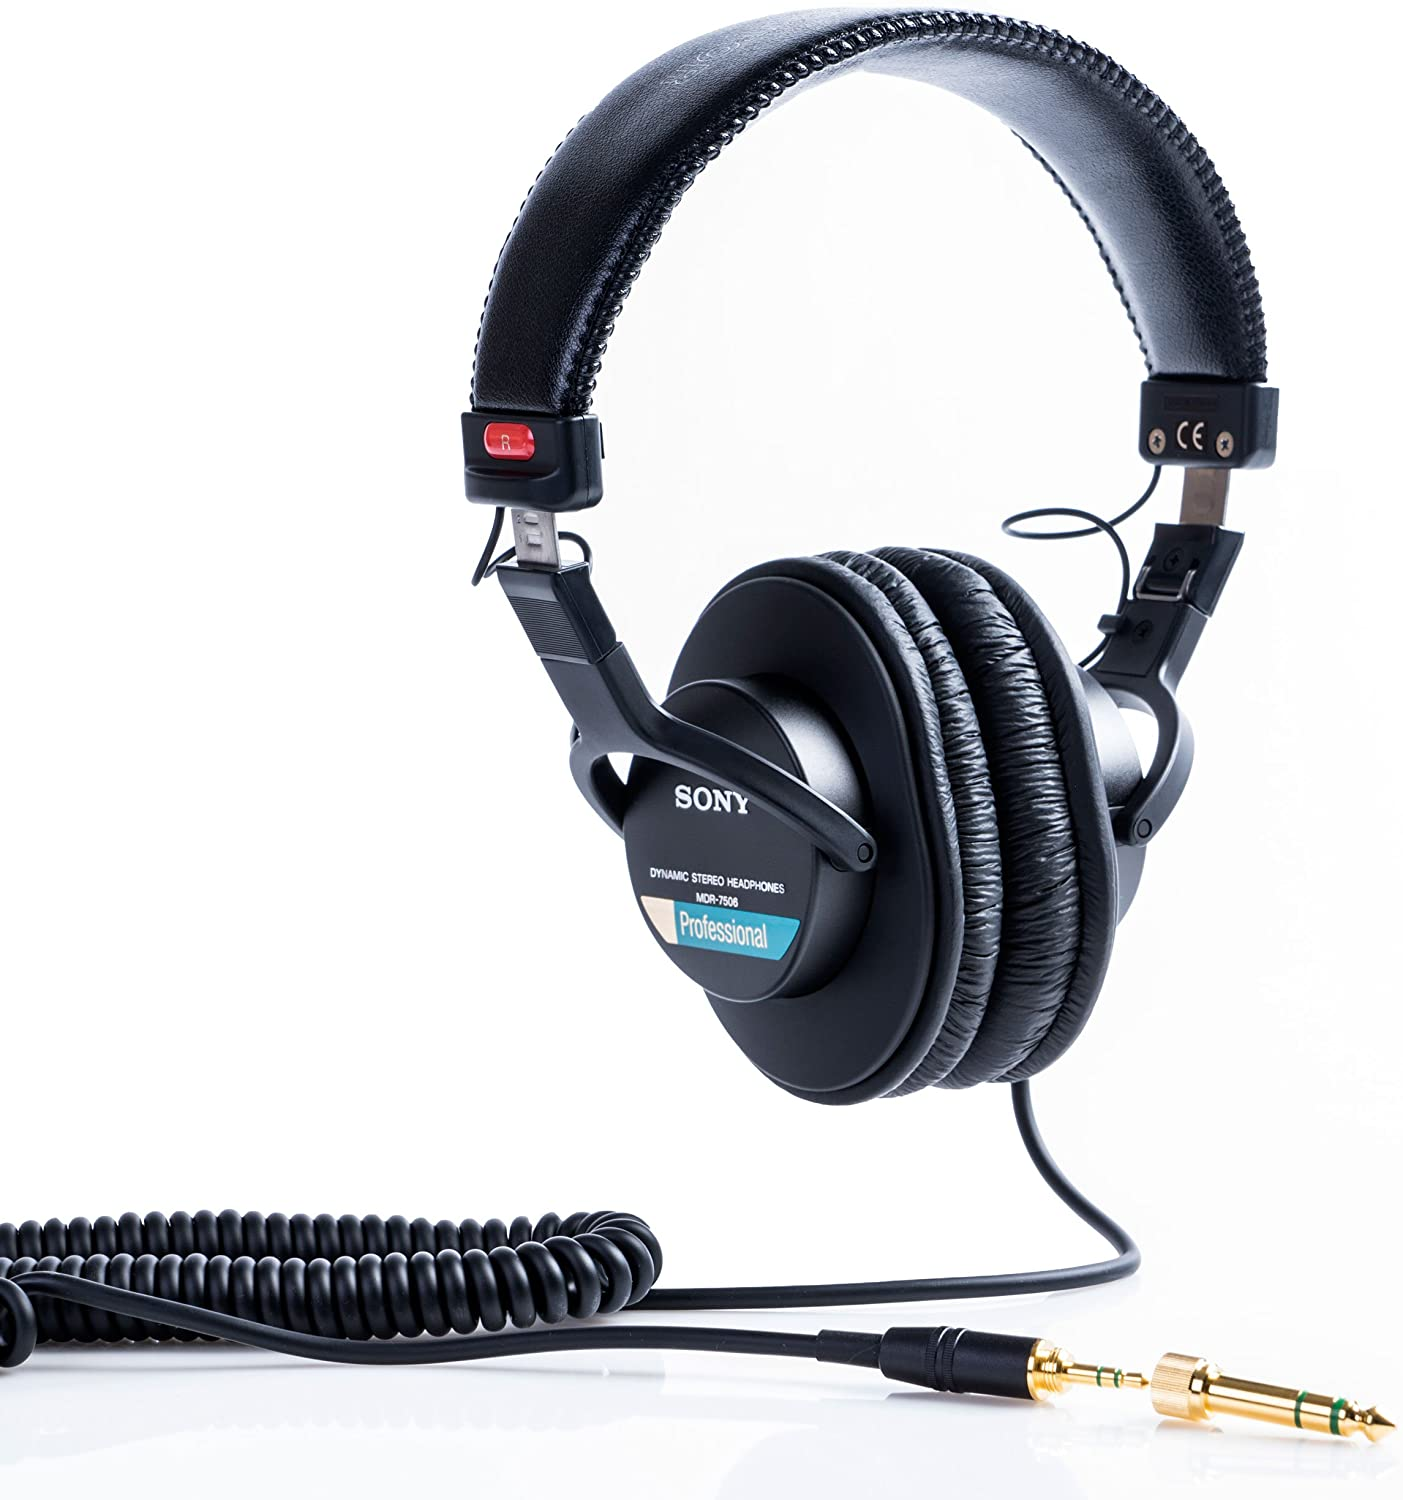 10 Best Closed Back Headphones 2021 - Buying Guide 4